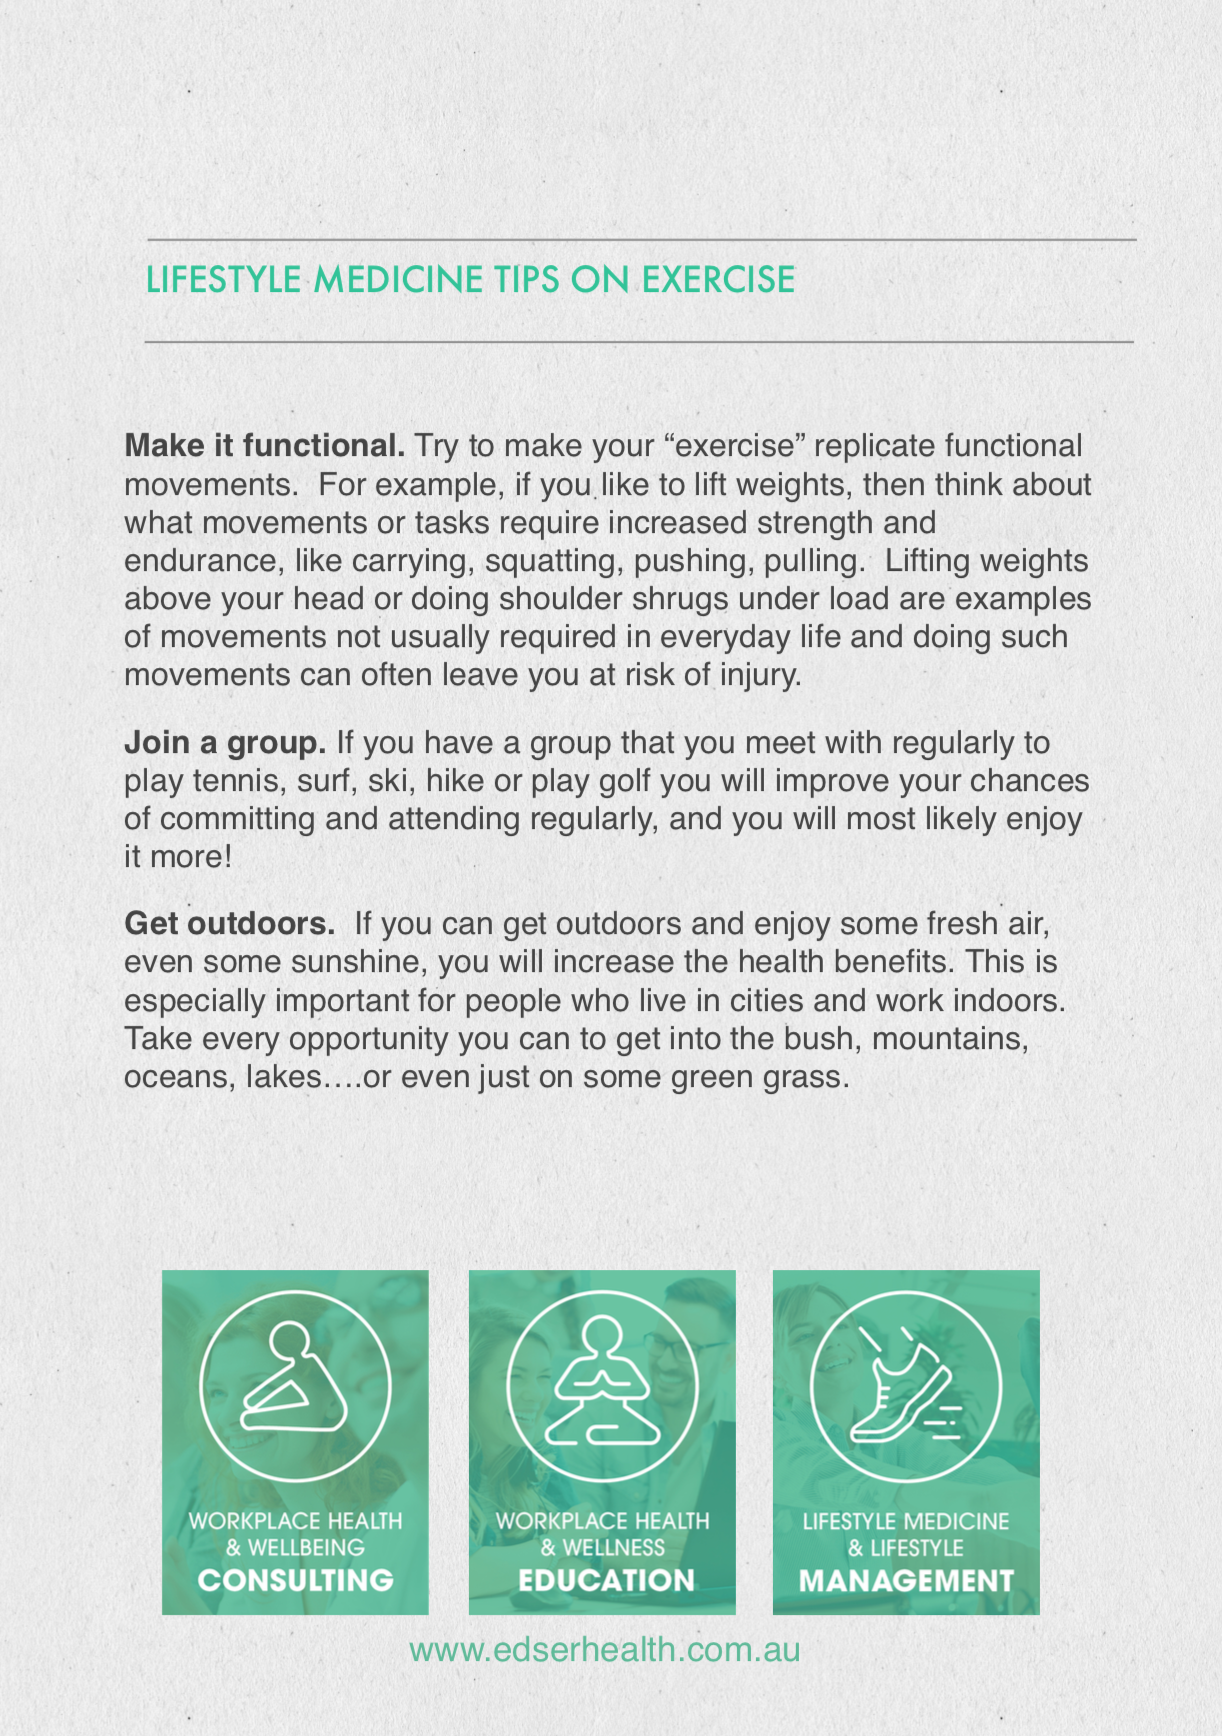 lifestyle-medicine-exercise-tips.png